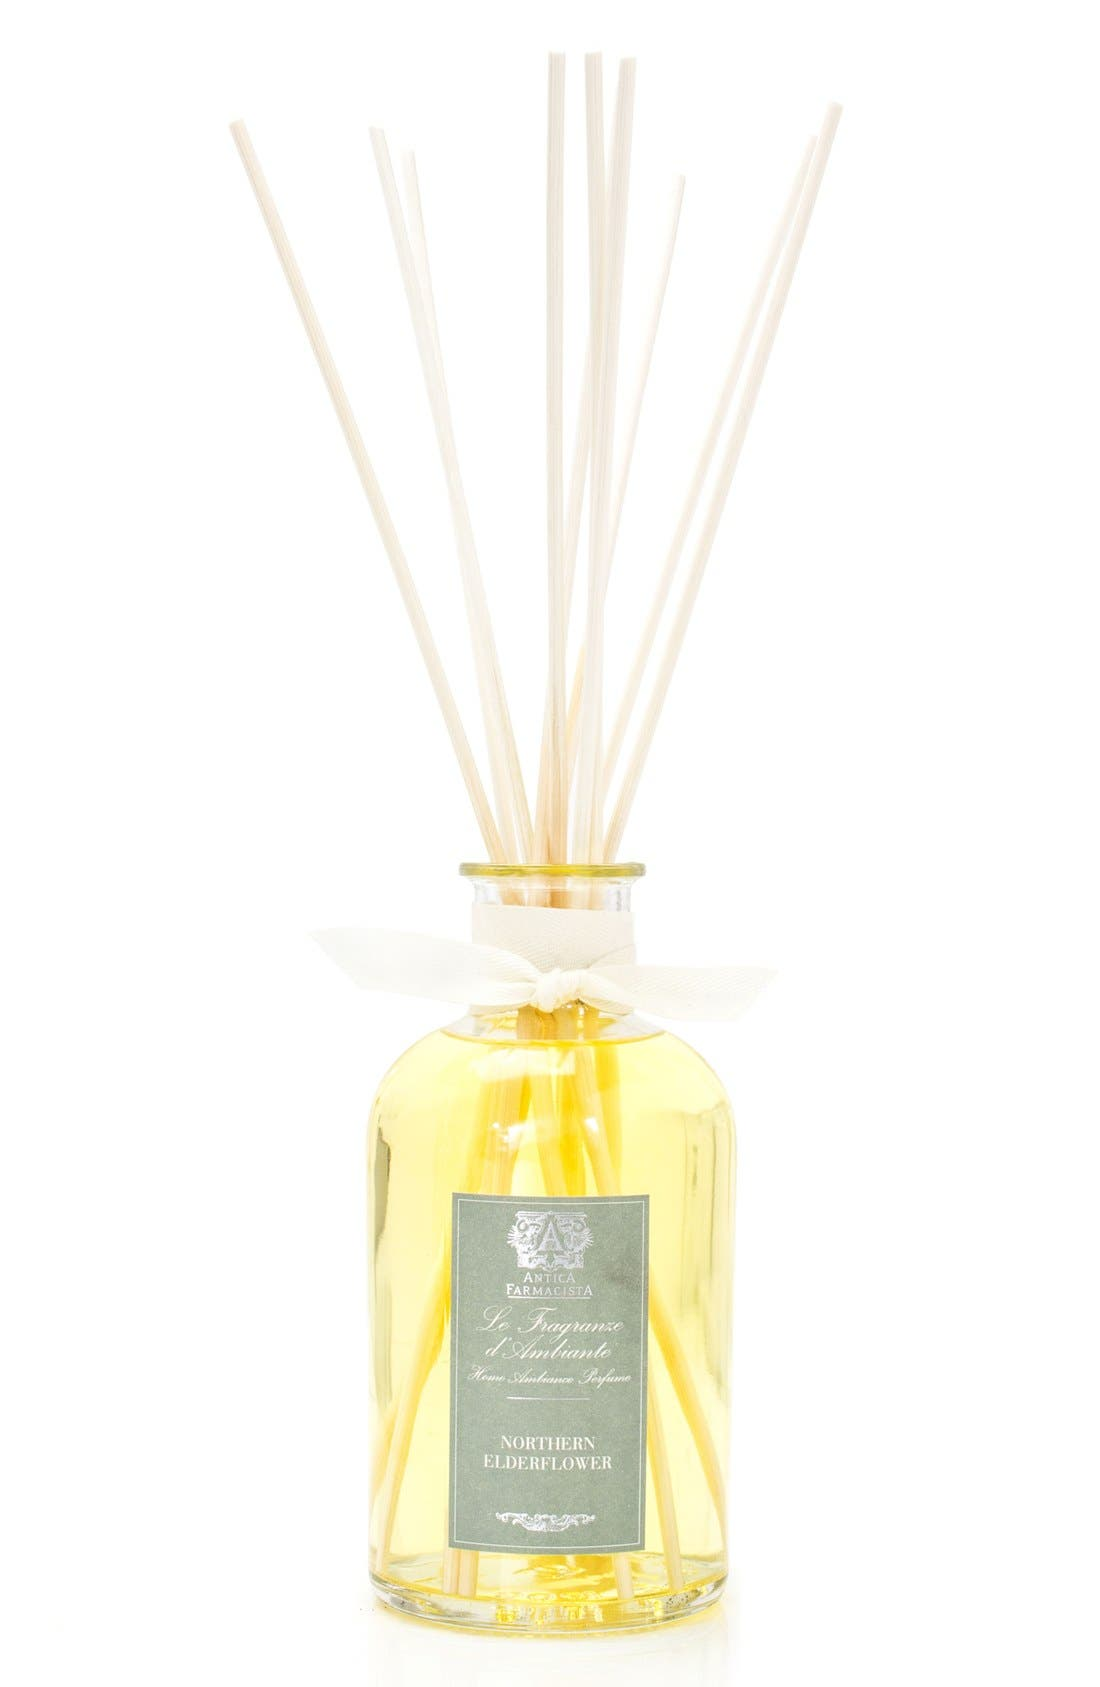 Alternate Image 1 Selected - Antica Farmacista Northern Elderflower Home Ambiance Fragrance